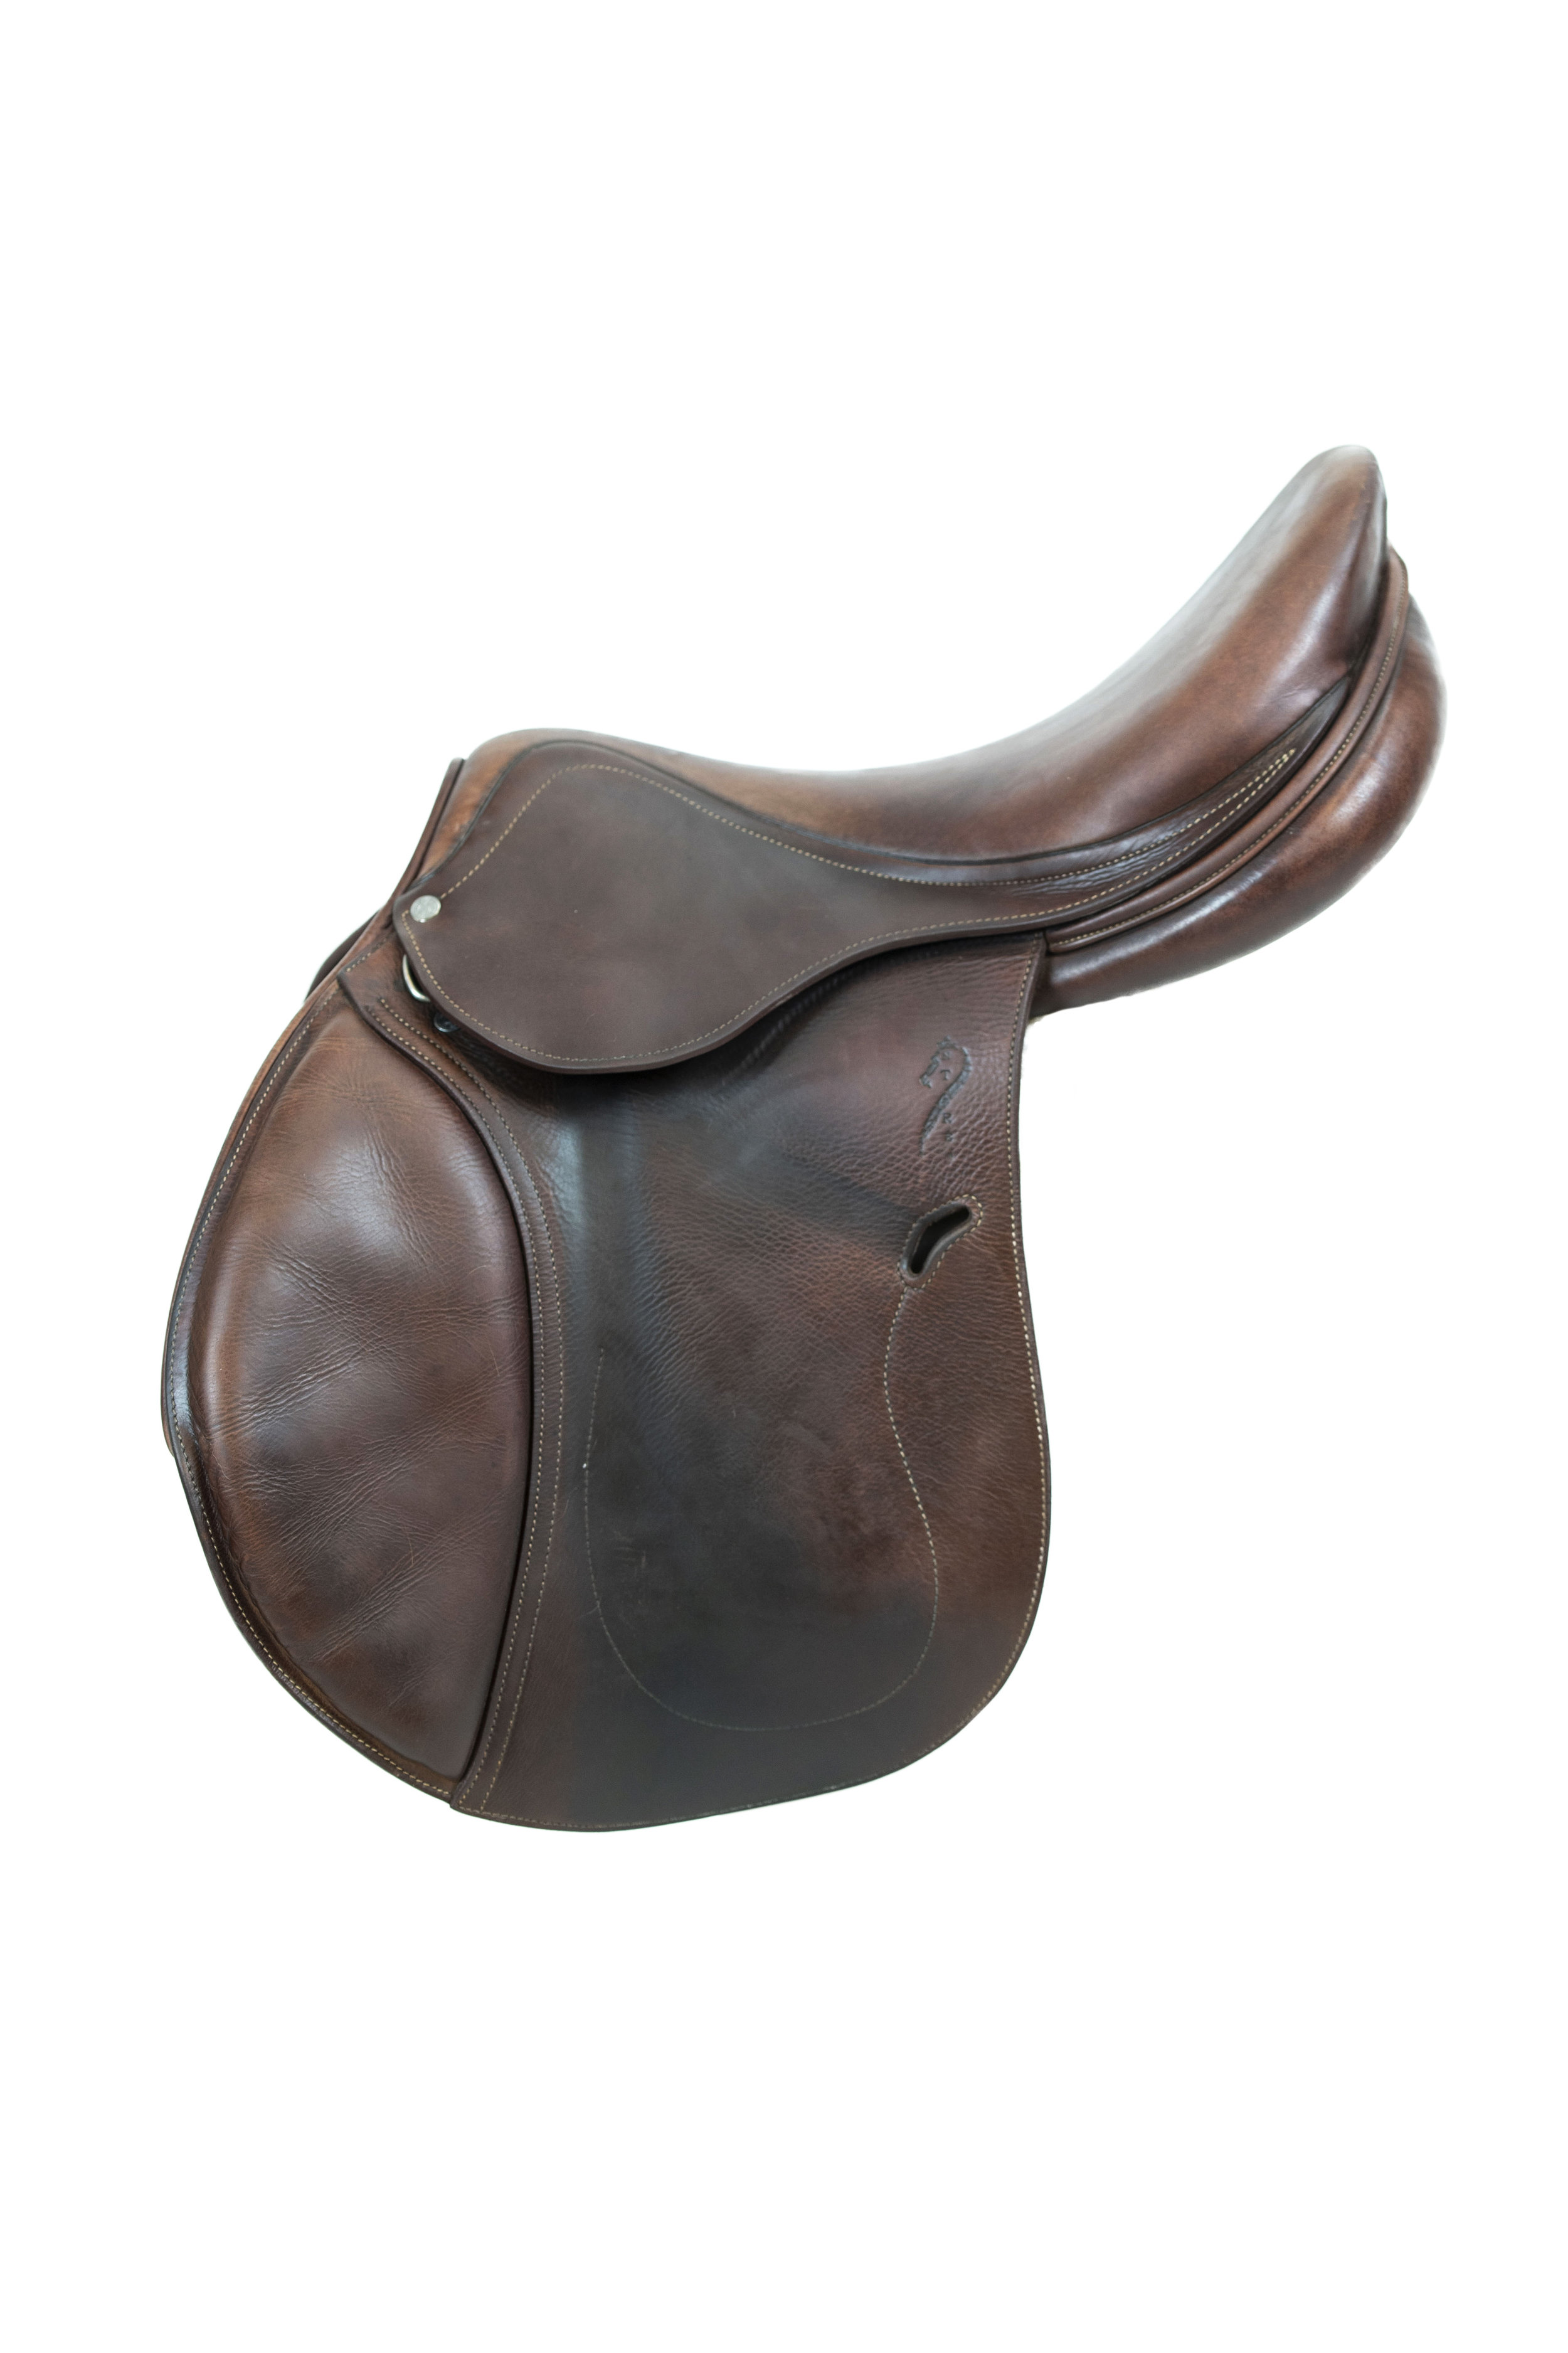 Pre-Owned Saddles